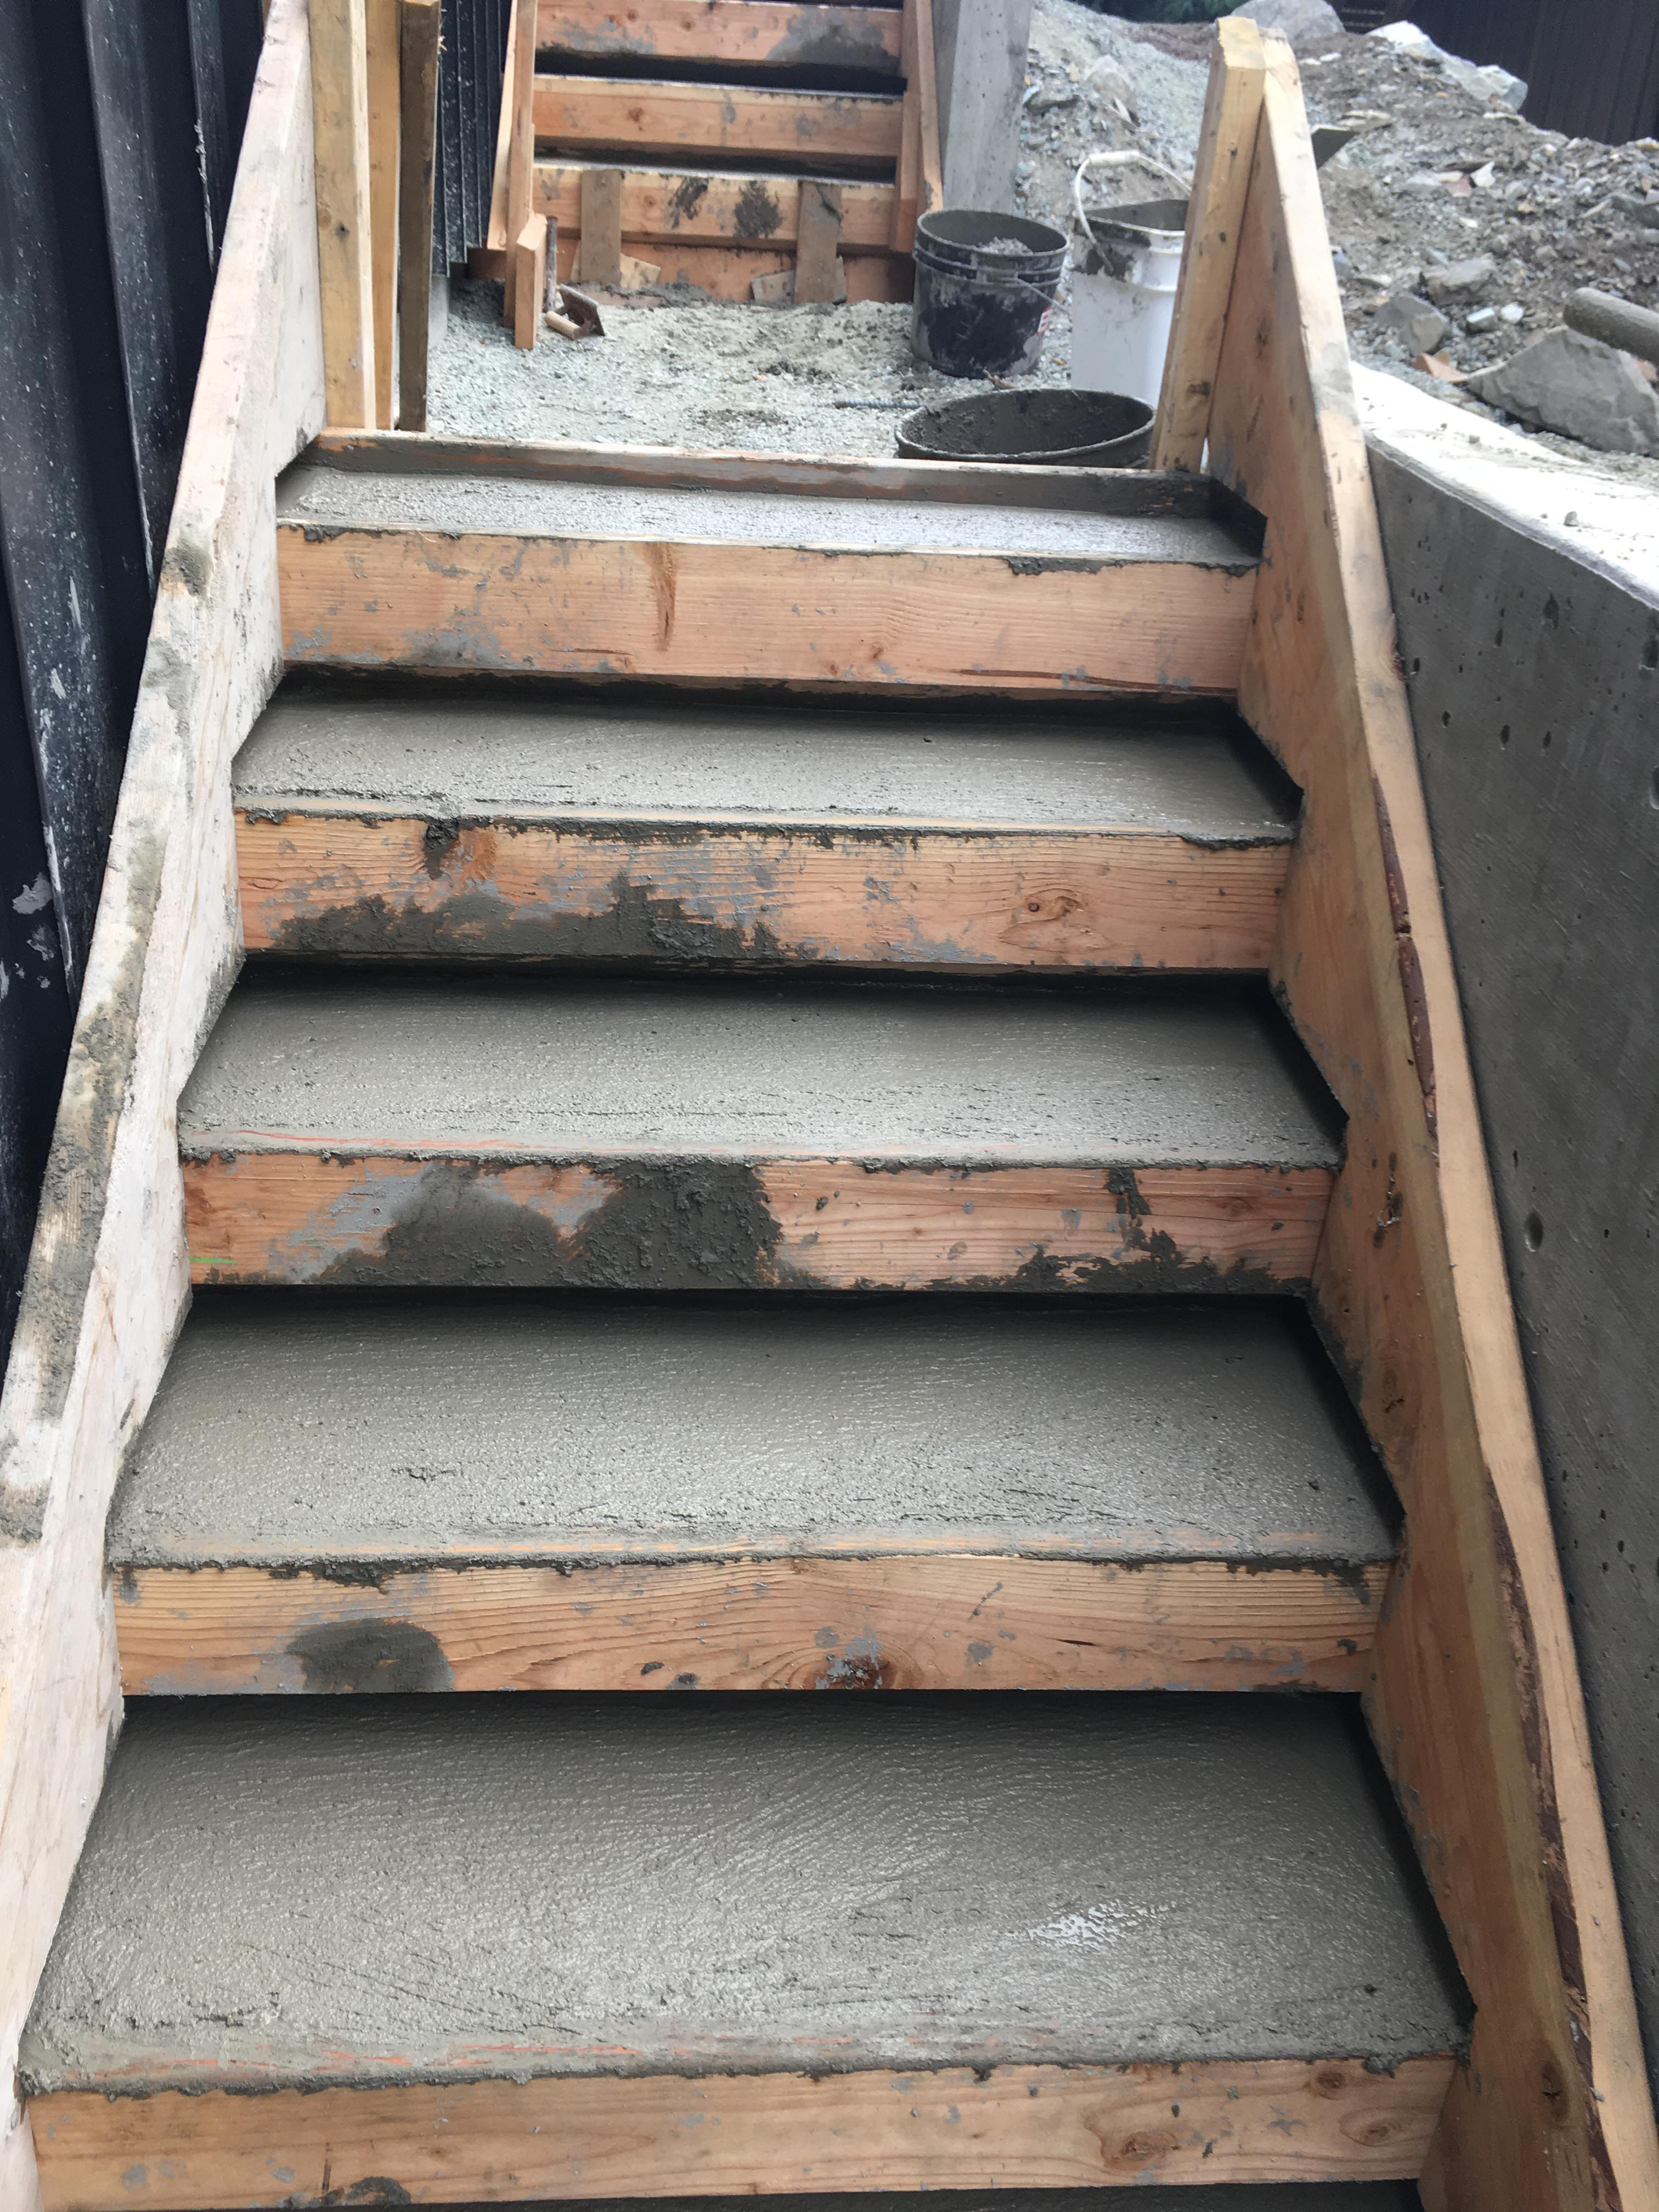 Pound 4 Pound, Framing and Forming. Concrete stairs, Whistler